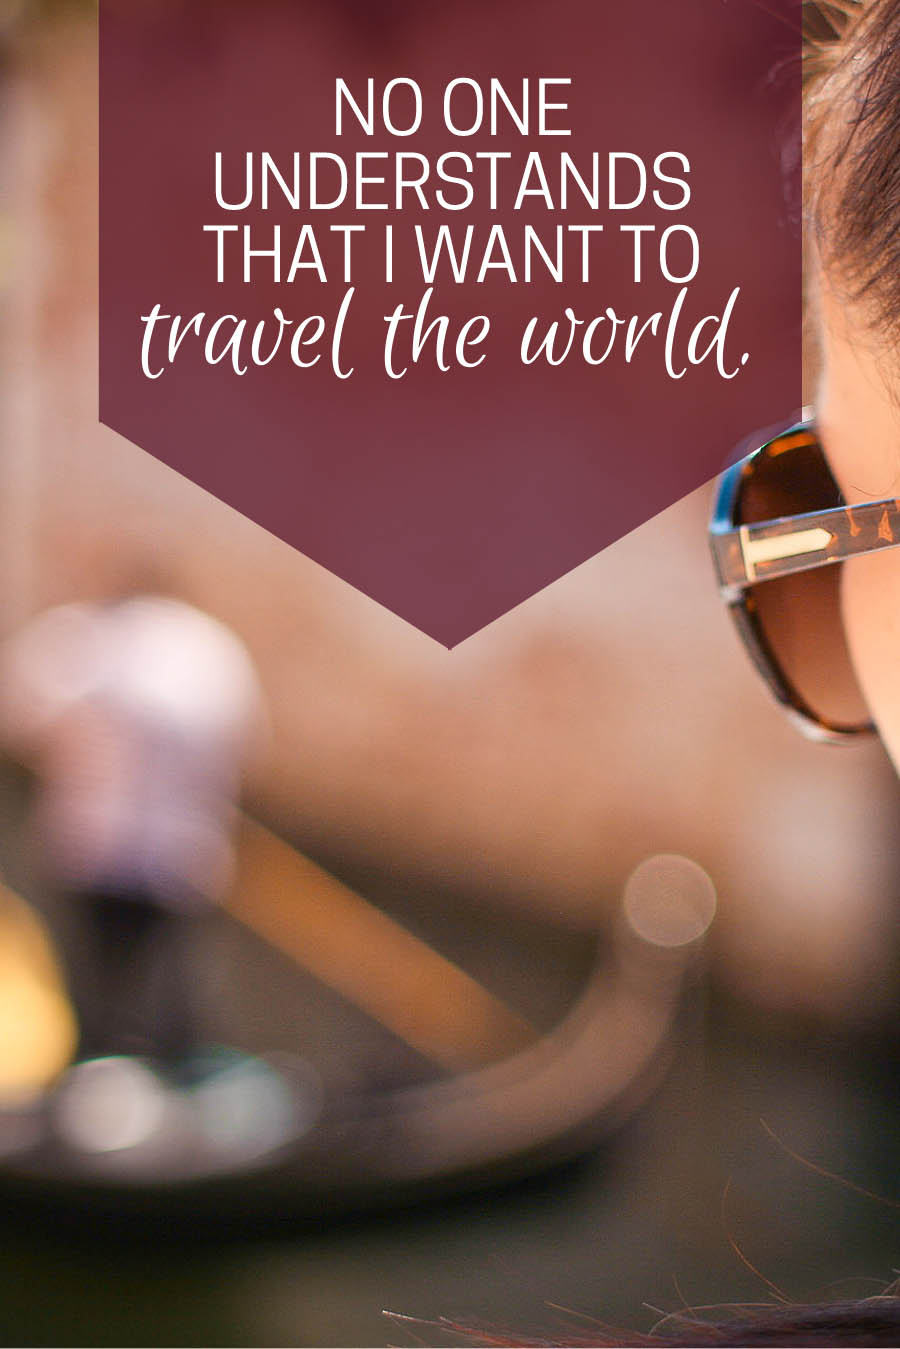 No one understands that I want to travel the world.